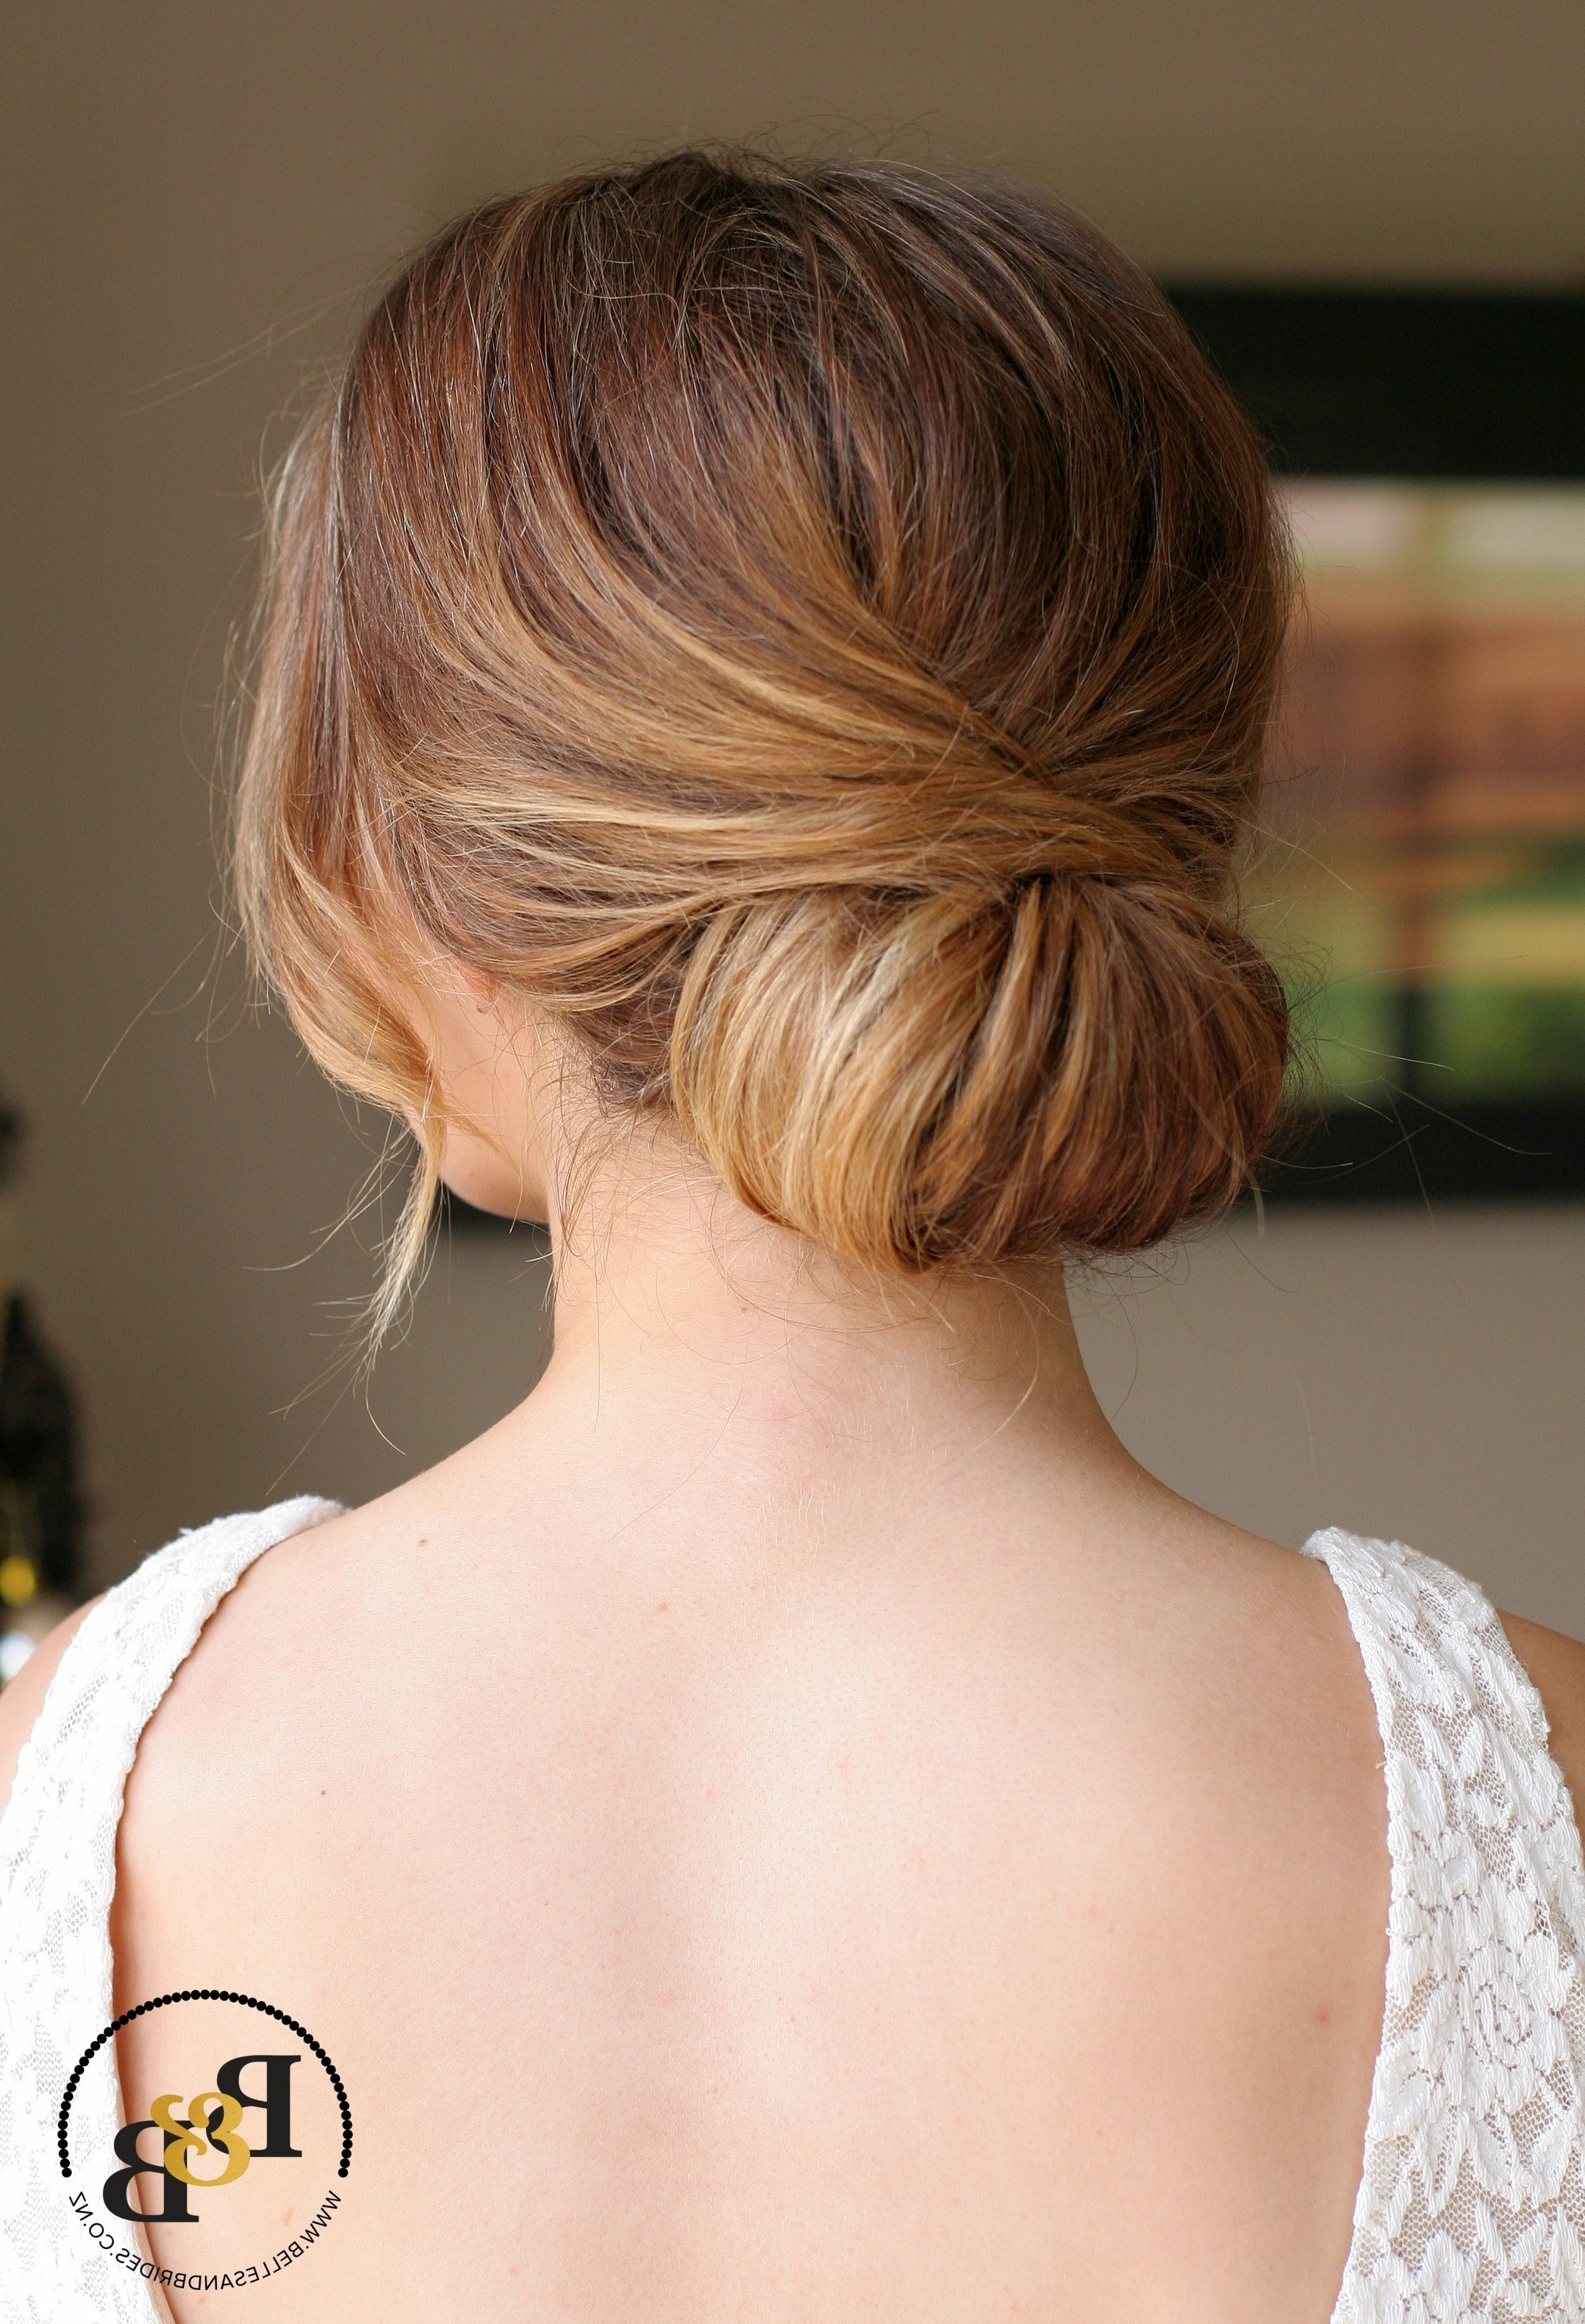 Best And Newest Wedding Hairstyles For Long Low Bun Hair In Amusing Bridal Hairstyles Low Bun About Wedding Hair Low Chignon (View 4 of 15)